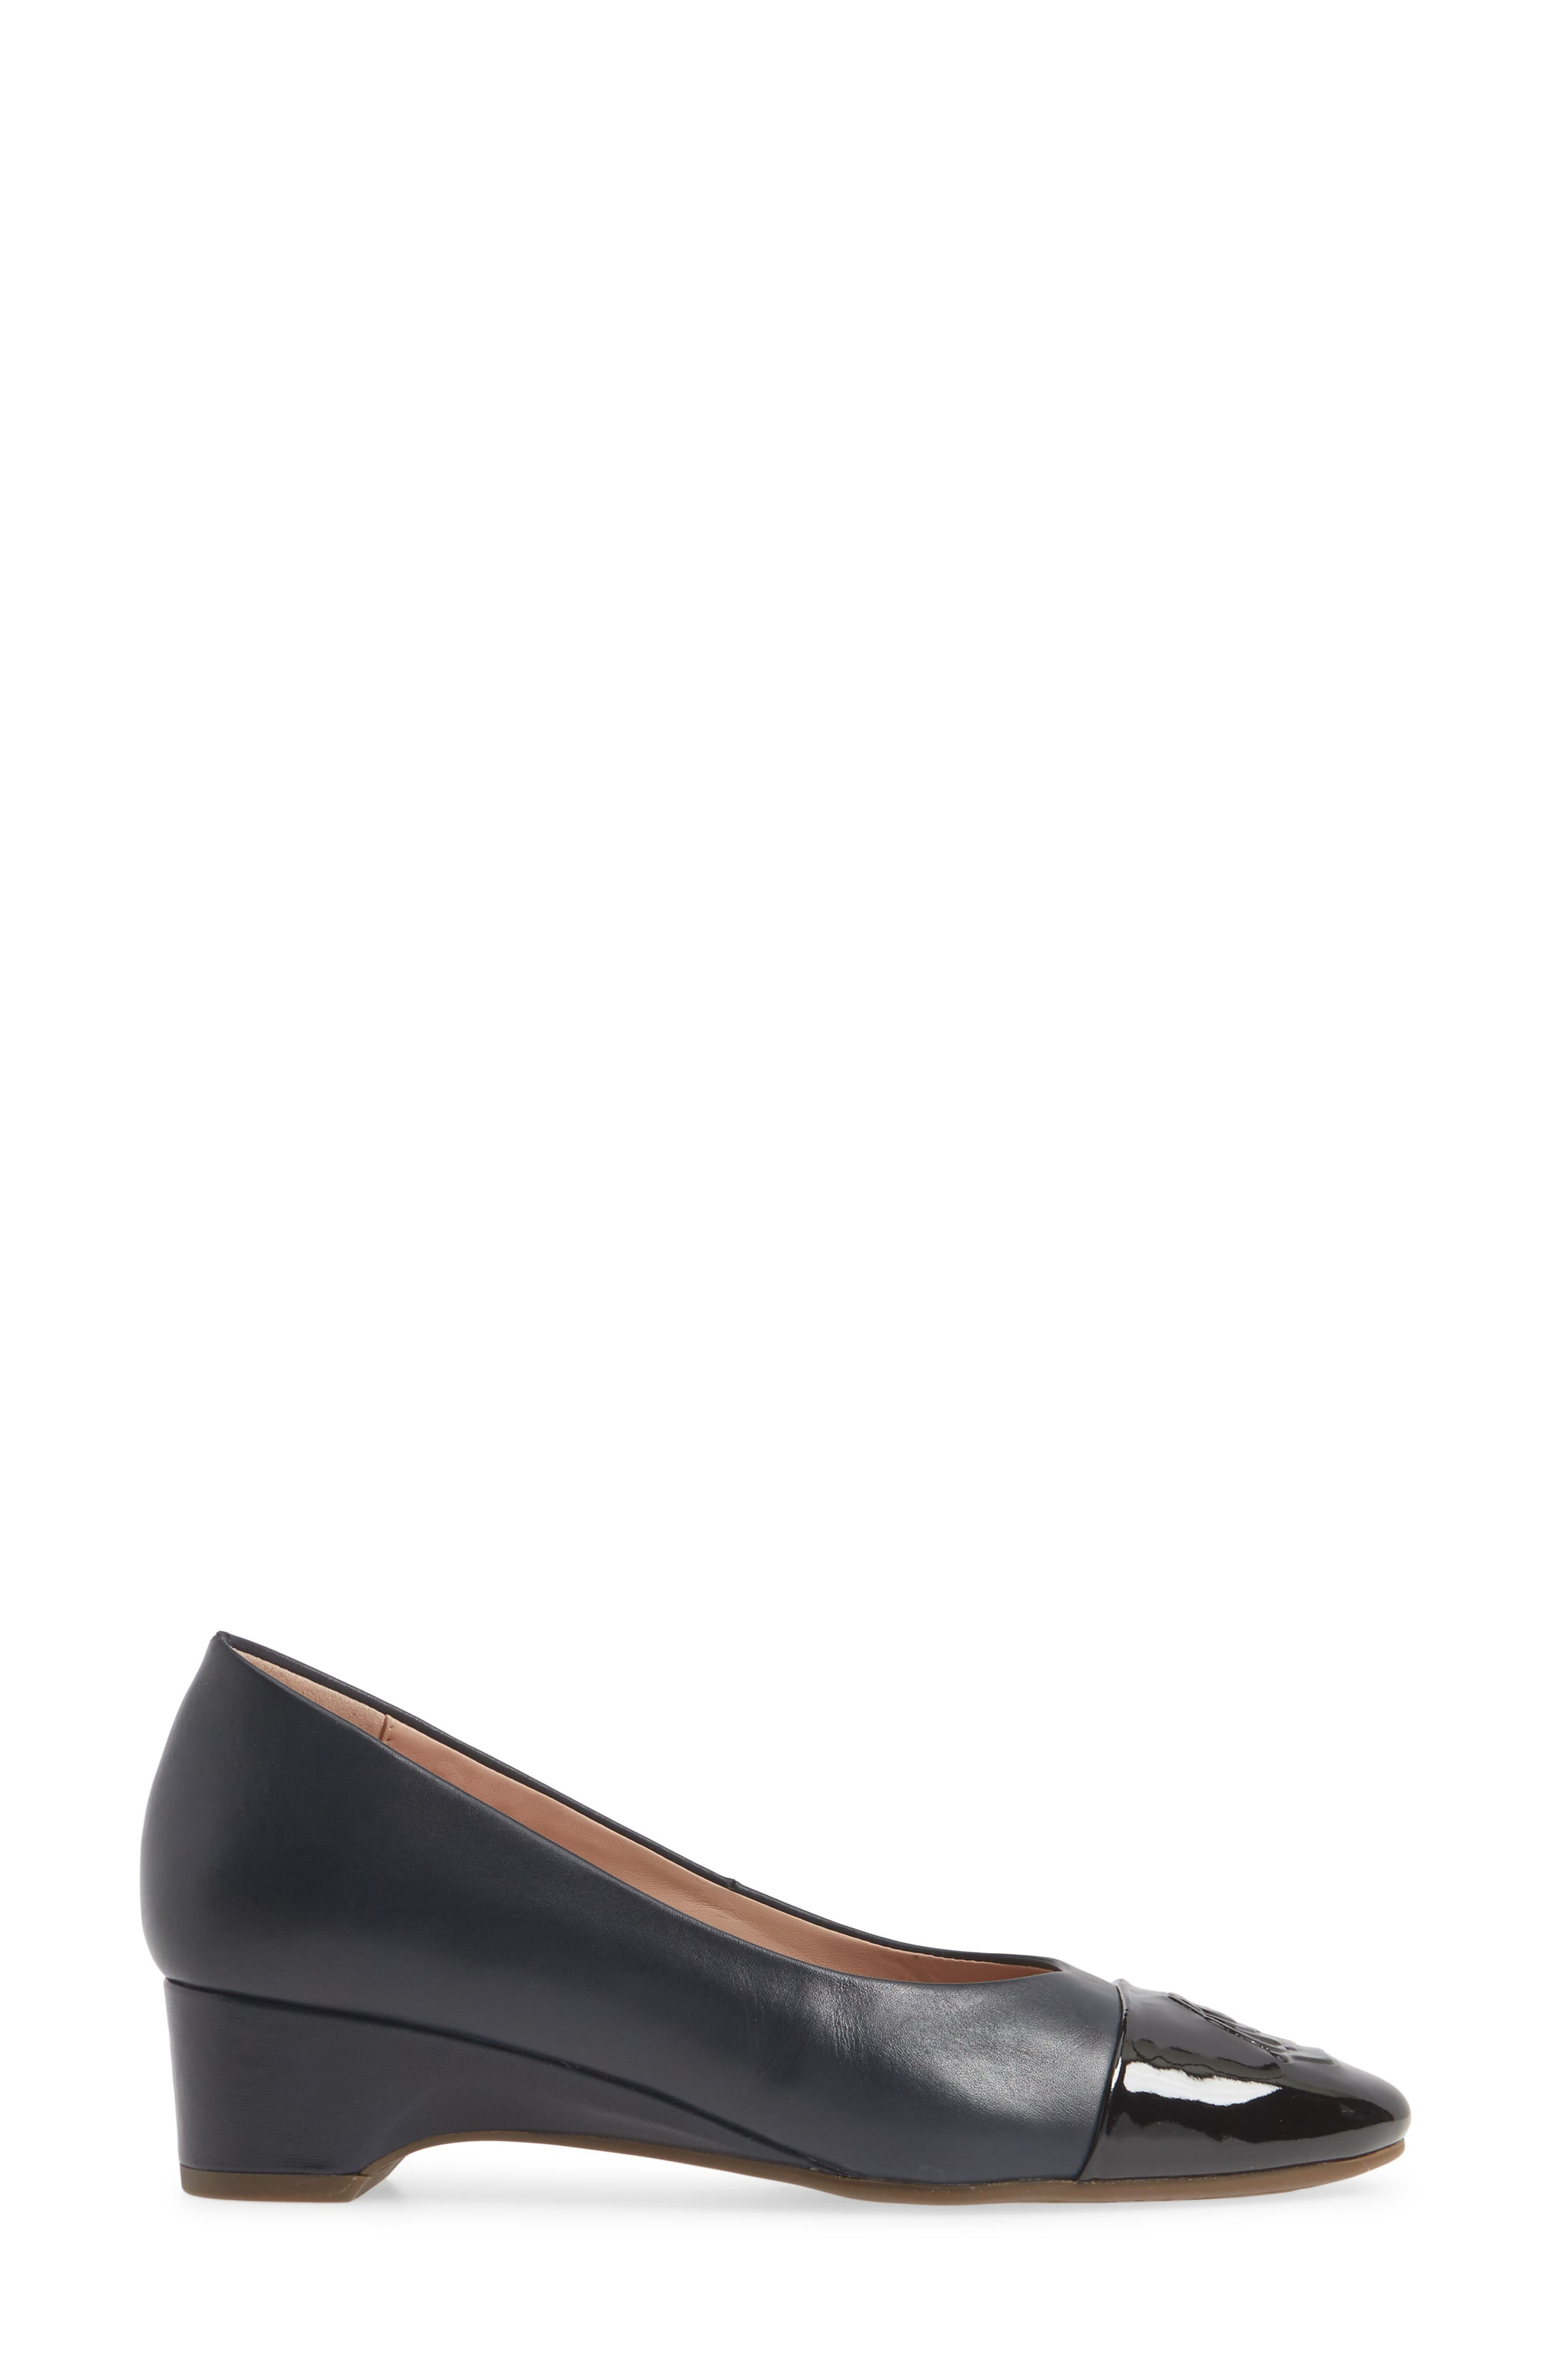 TARYN ROSE, Babe Cap Toe Pump, Alternate thumbnail 3, color, MIDNIGHT/ BLACK LEATHER